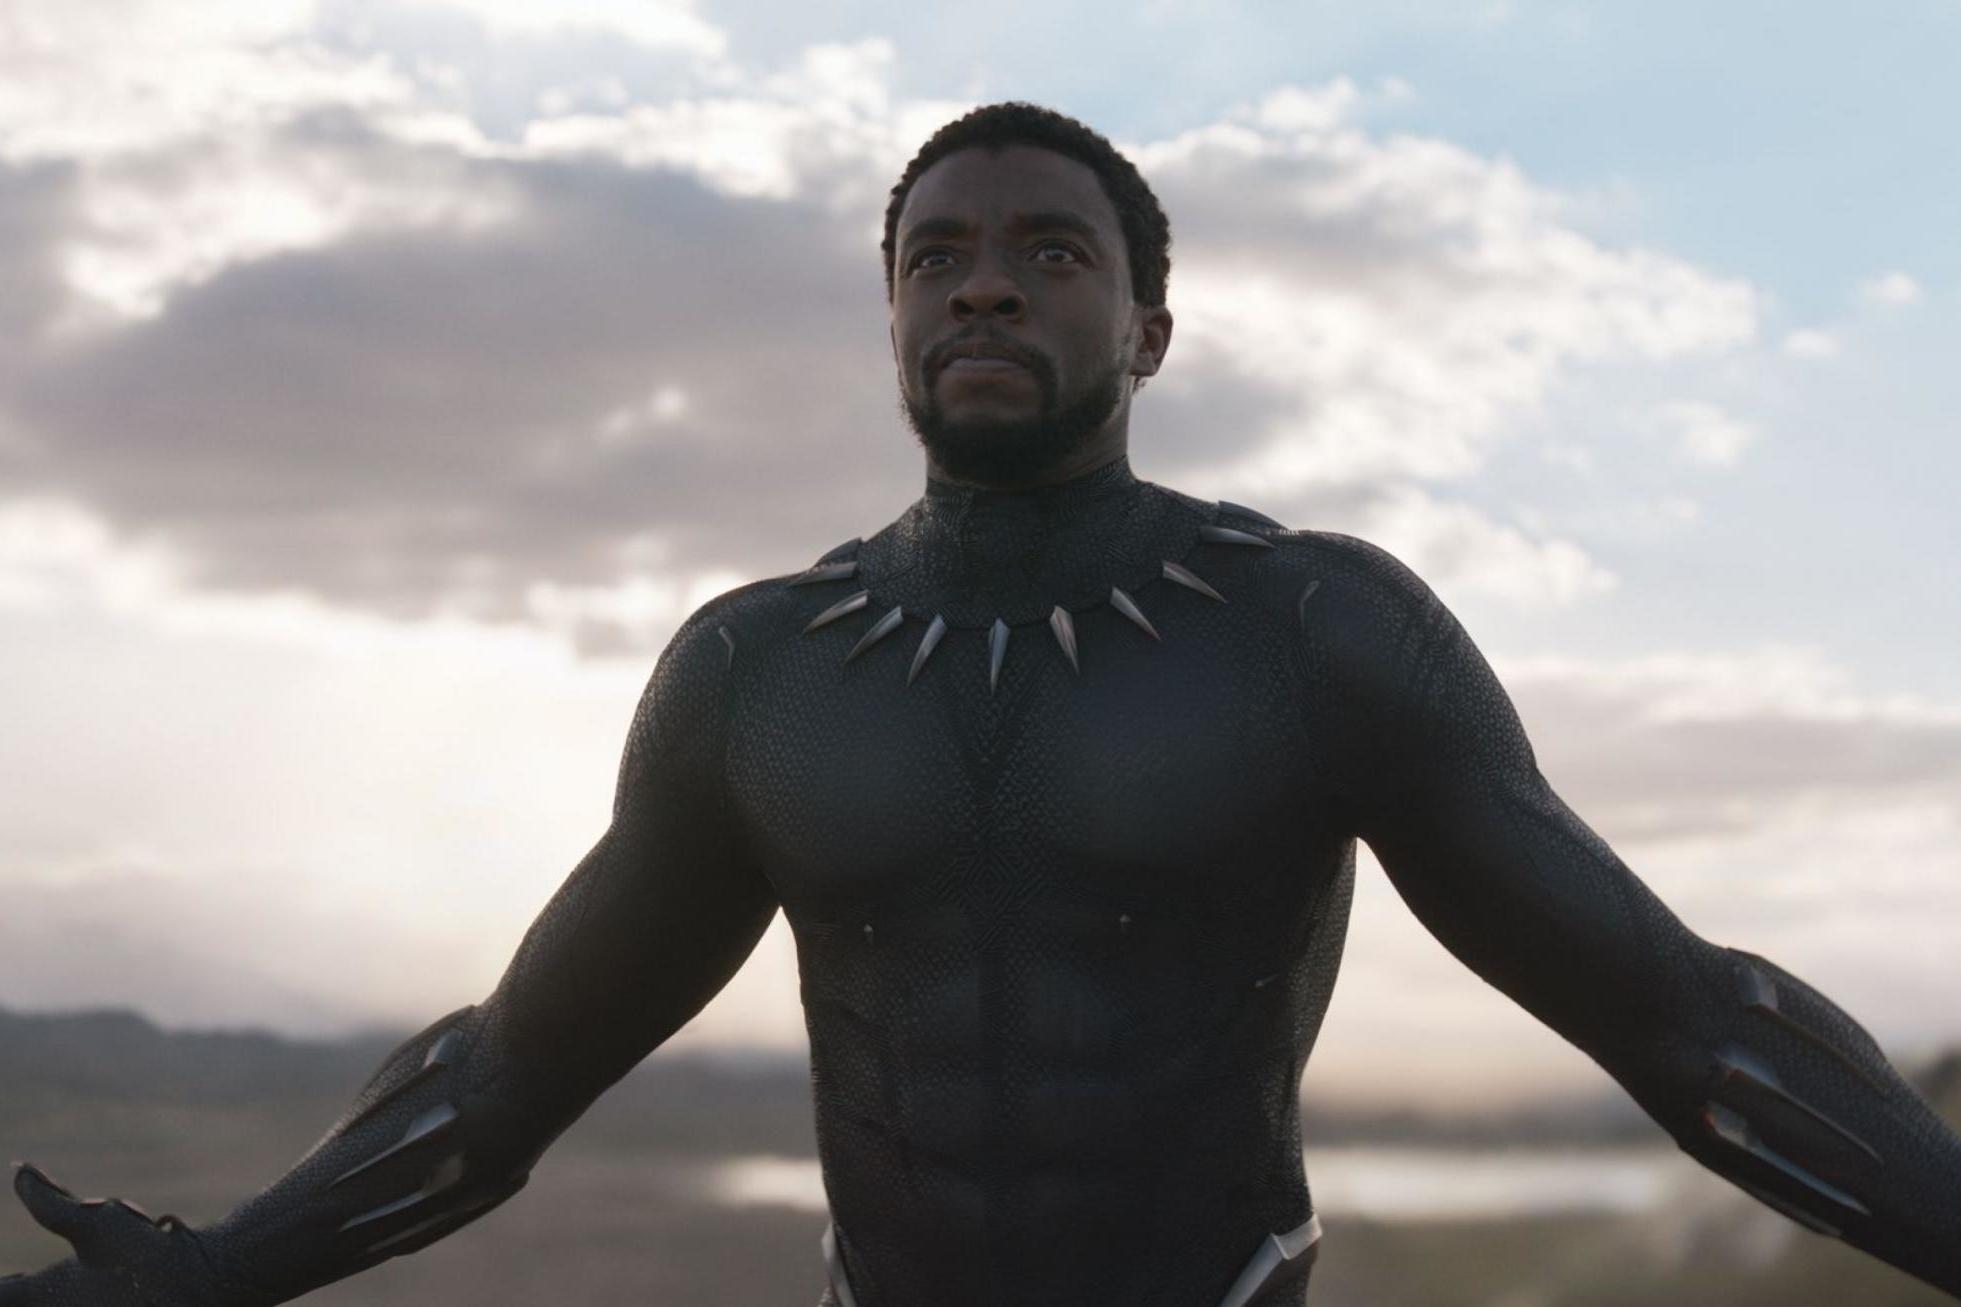 Forever 21 sparks outrage by modelling 'Black Panther' Wakanda top on white man